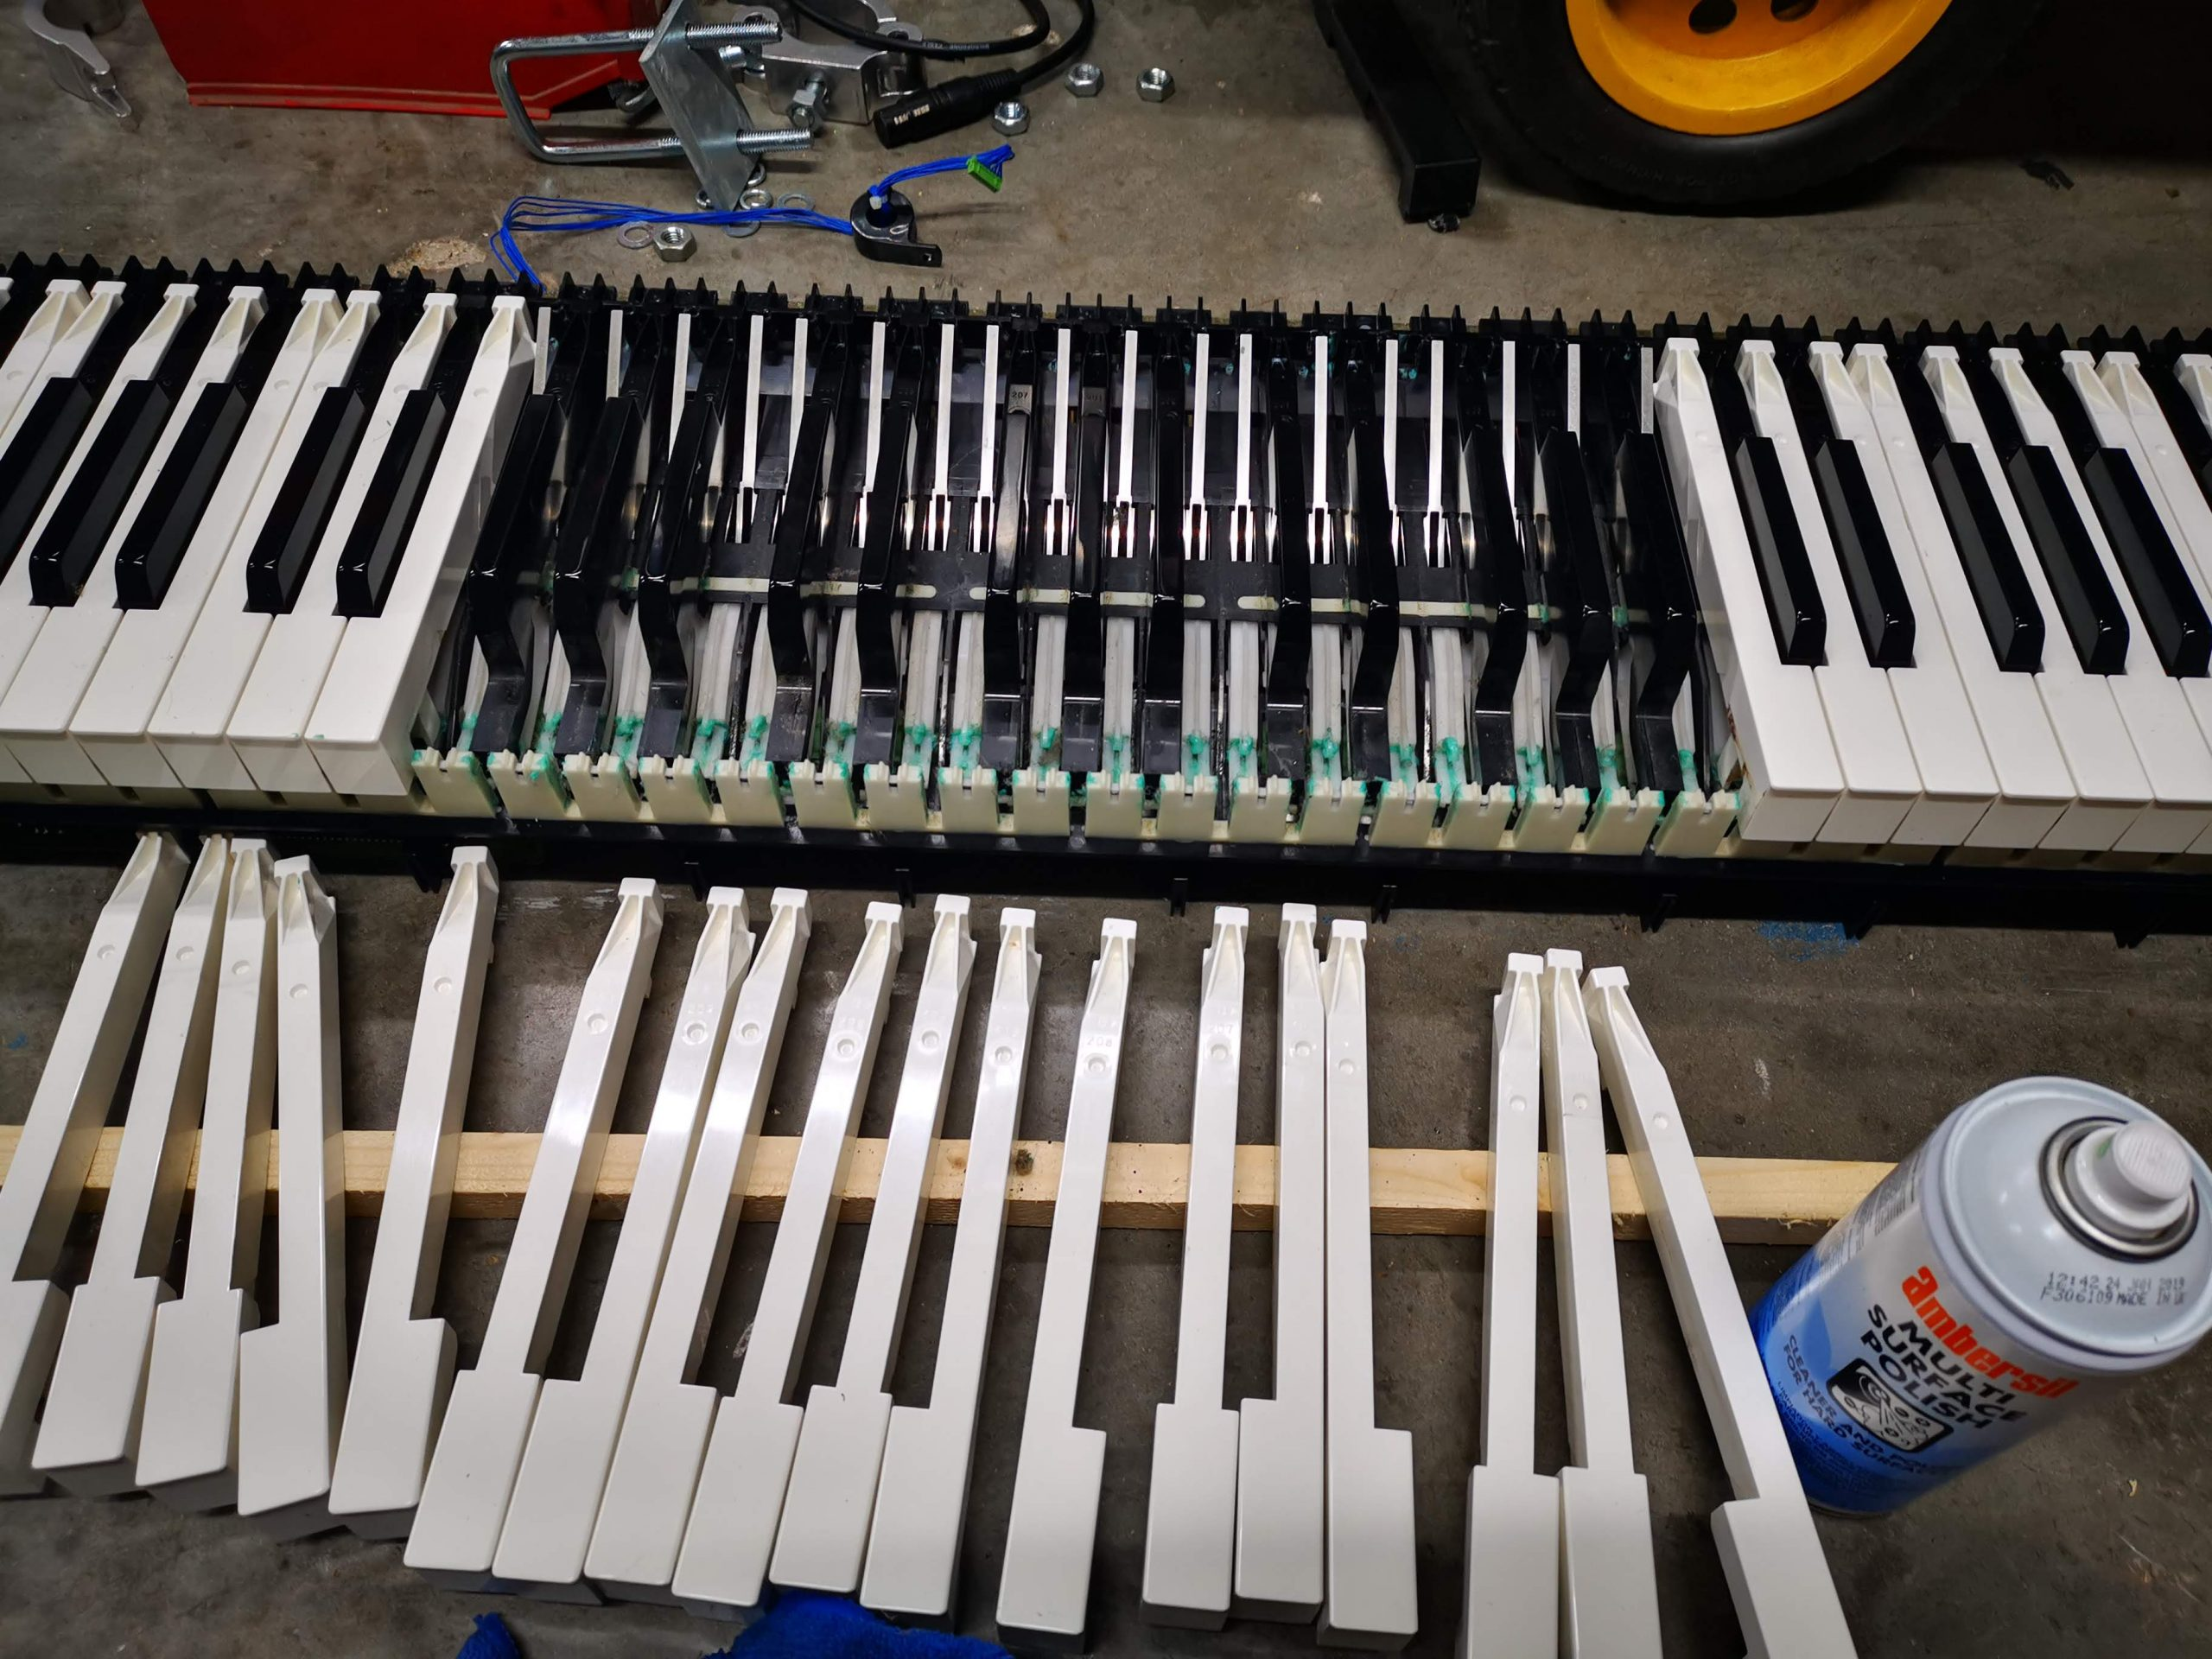 Keys removed in a Yamaha Electric Piano being repaired